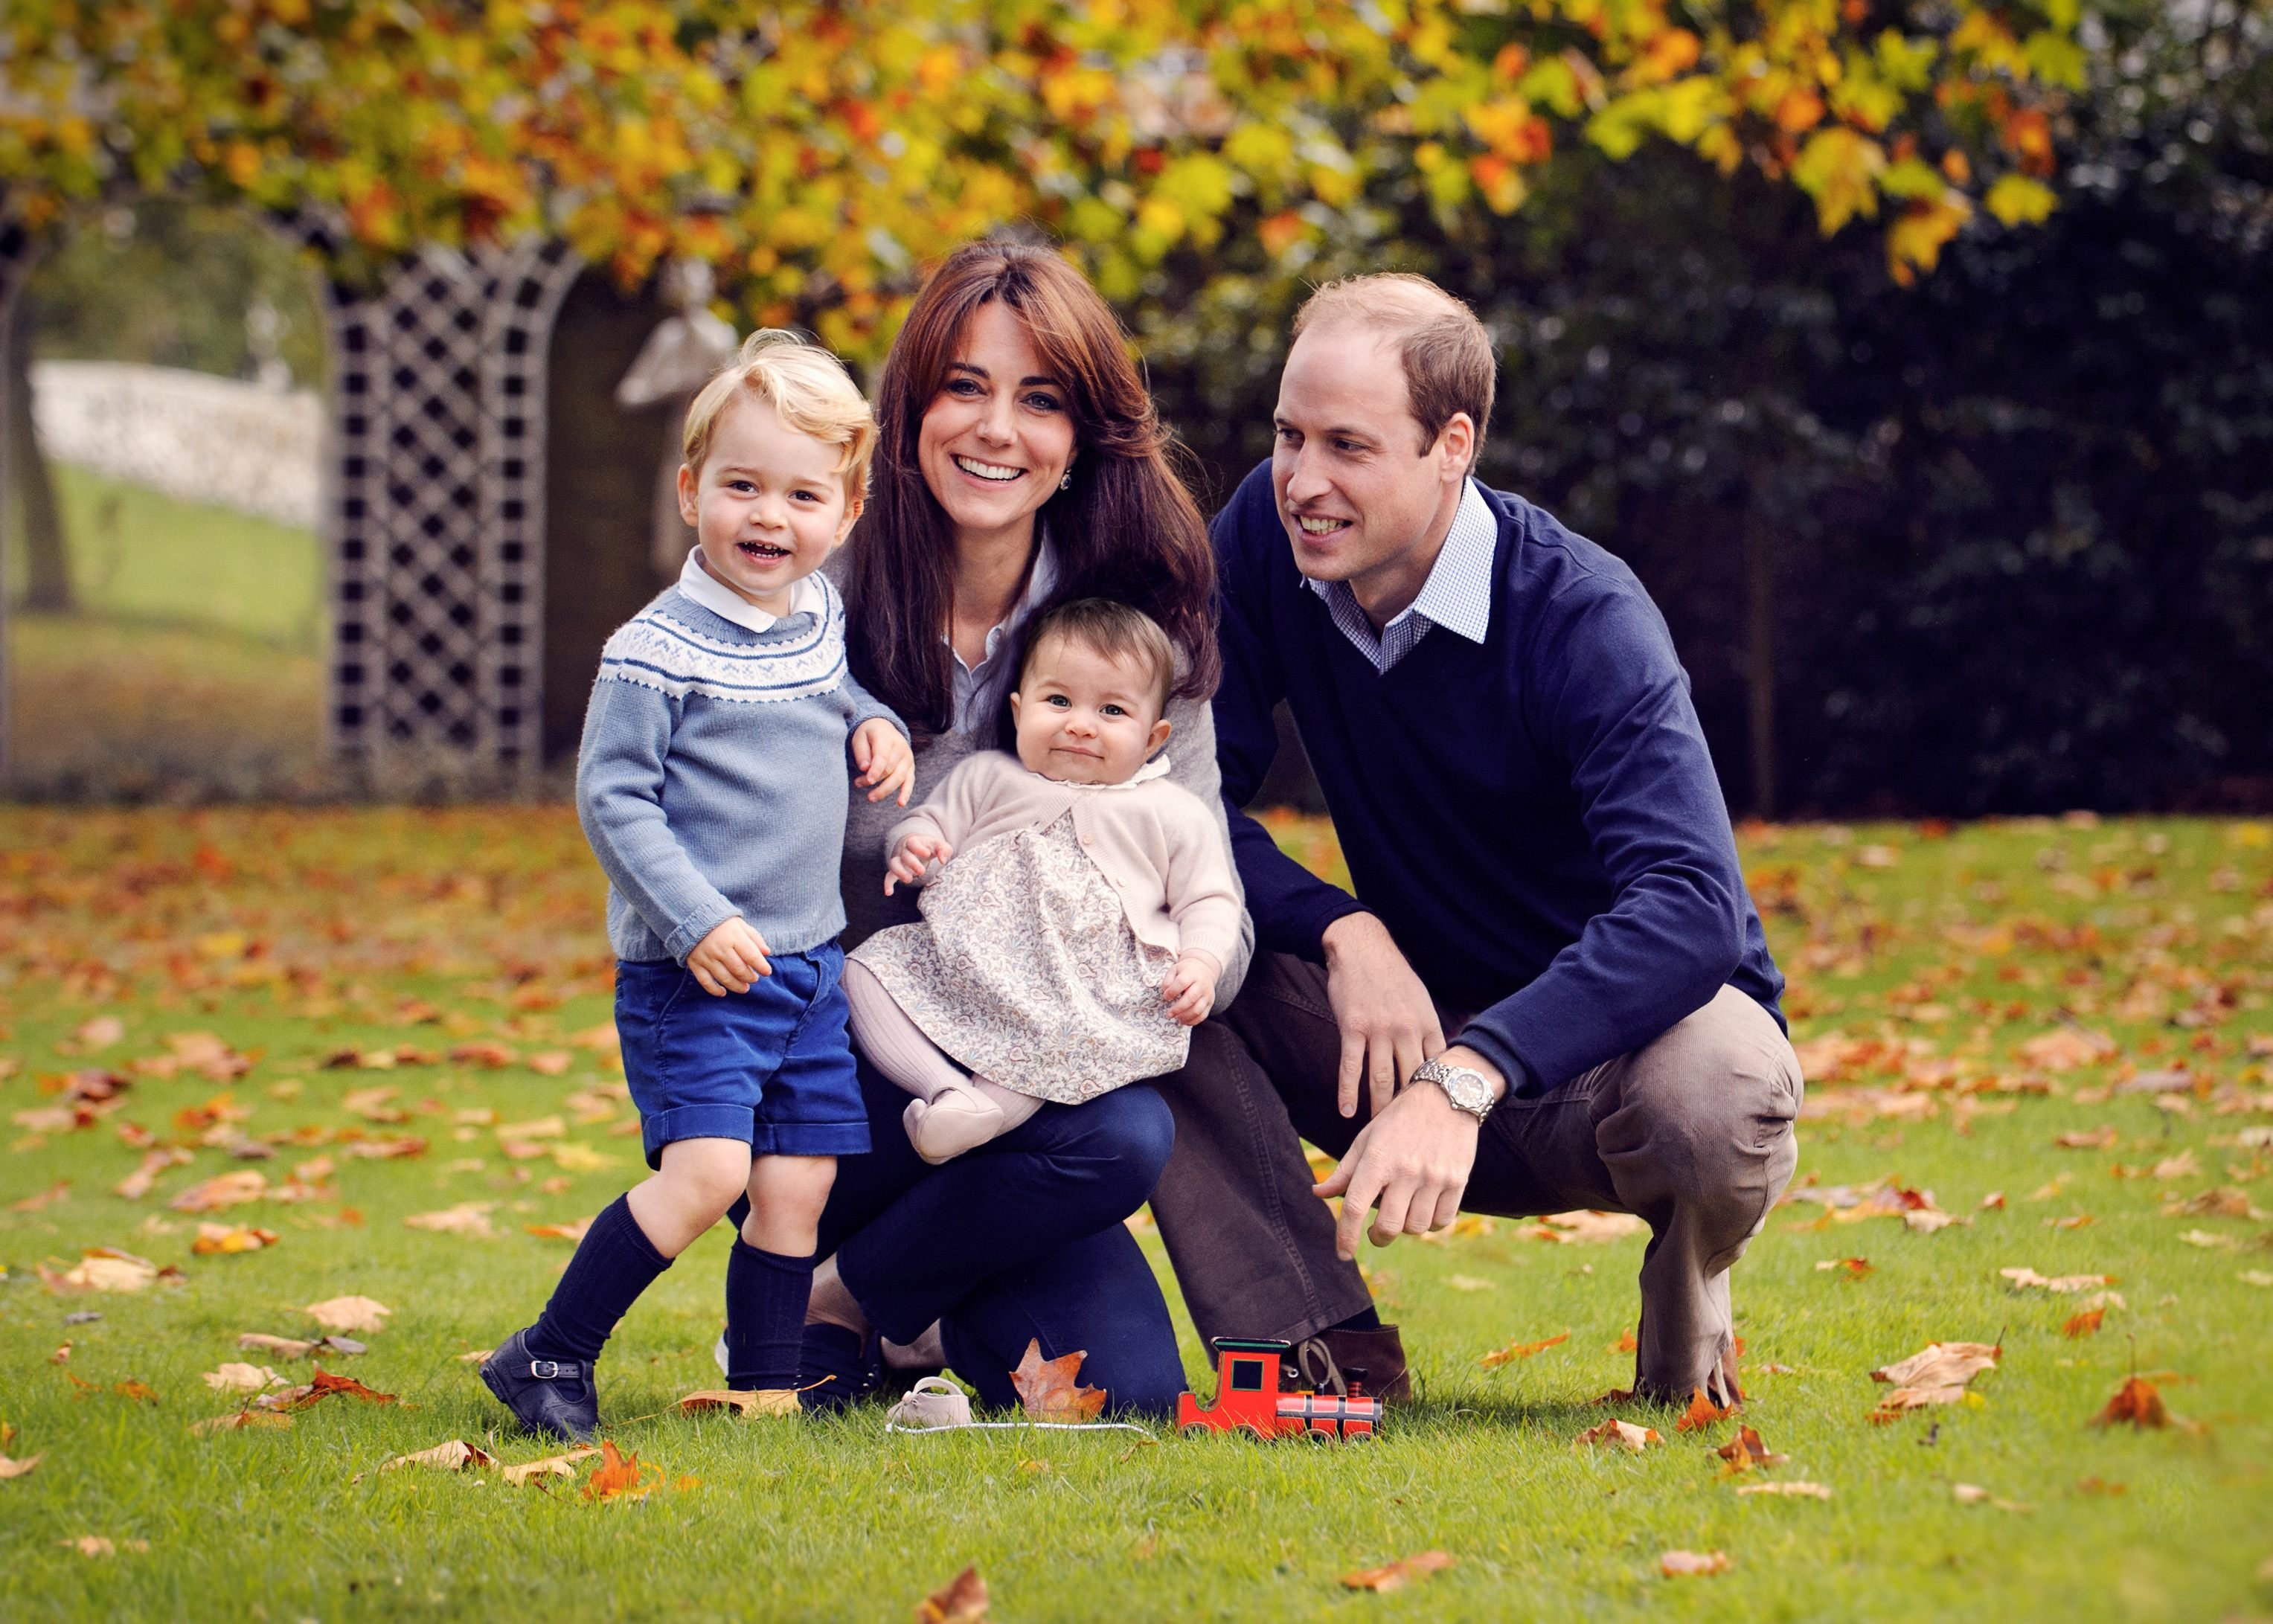 The royal family's holiday card, taken in late October 2015 at Kensington Palace in London.